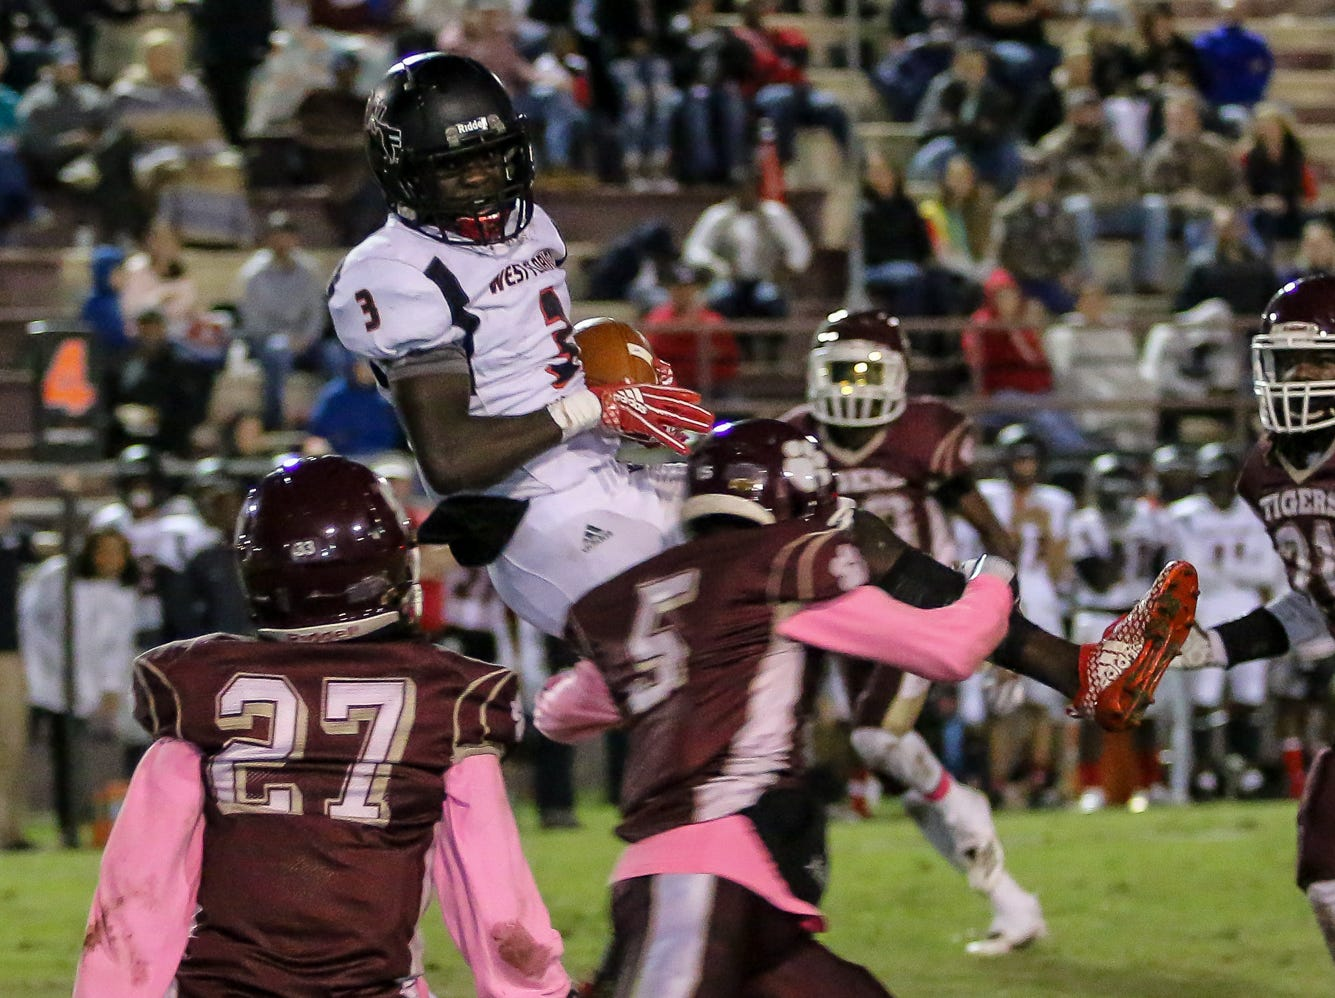 West Florida Tech's Keyshawn Swanson (3) makes a jumping catch before being tackled by PHS' Ernest Stallworth Jr. (5) in the District 1-5A matchup at Pensacola High School on Friday, October 26, 2018.